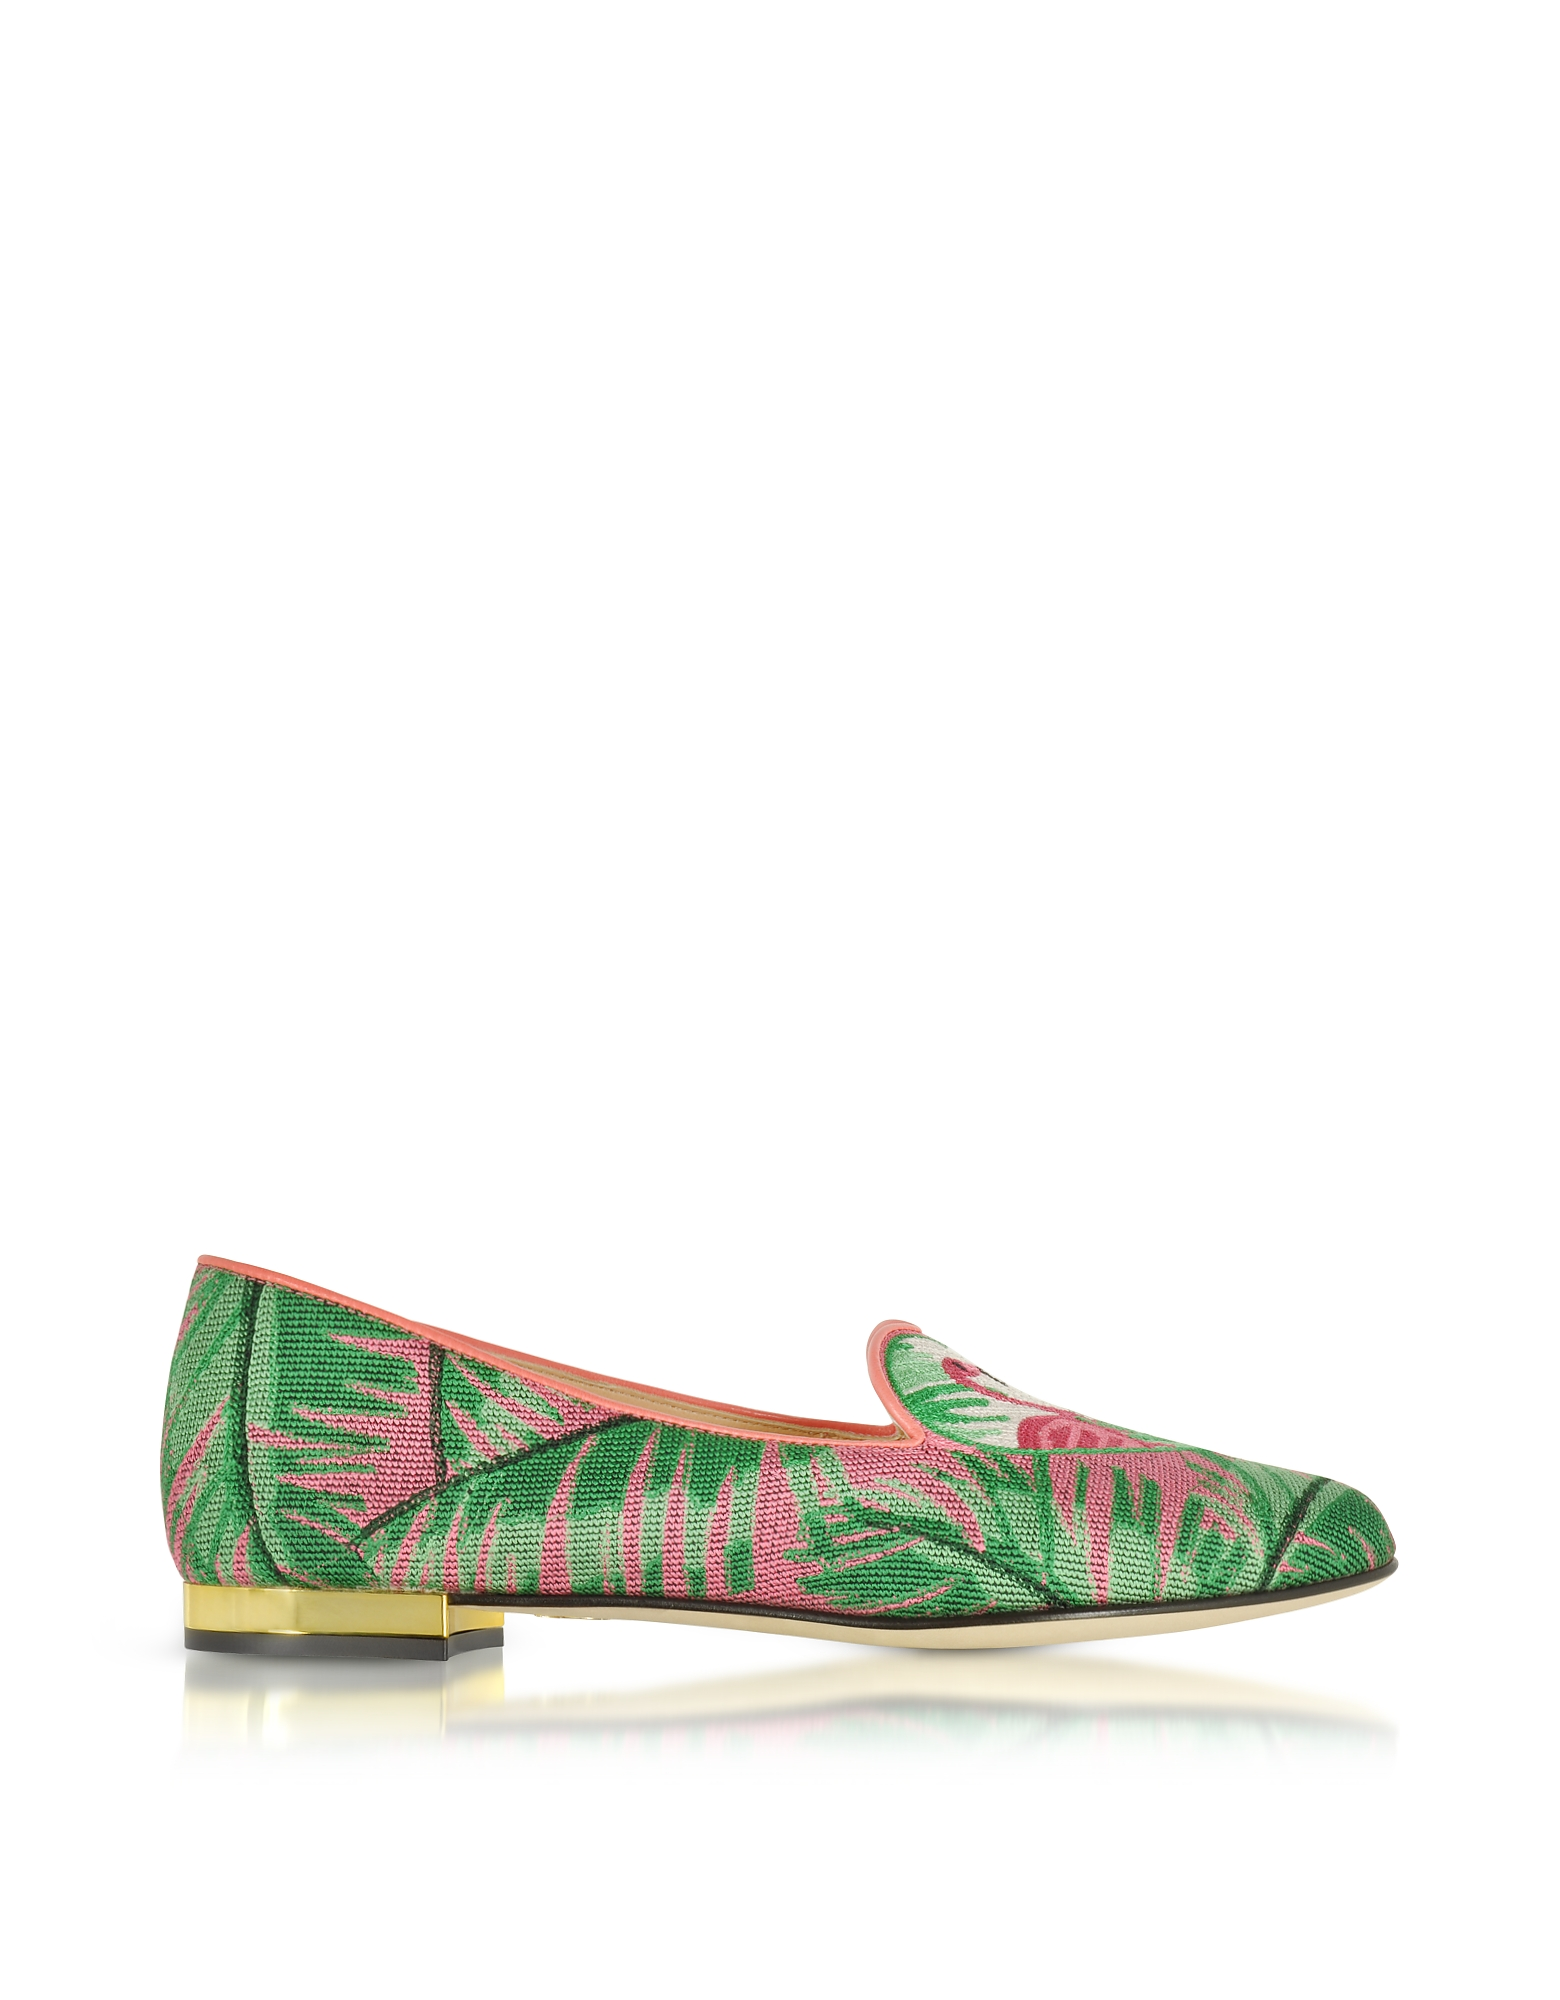 Charlotte Olympia Shoes, Flamingo Embroidered Canvas Slippers W/Leather Trim